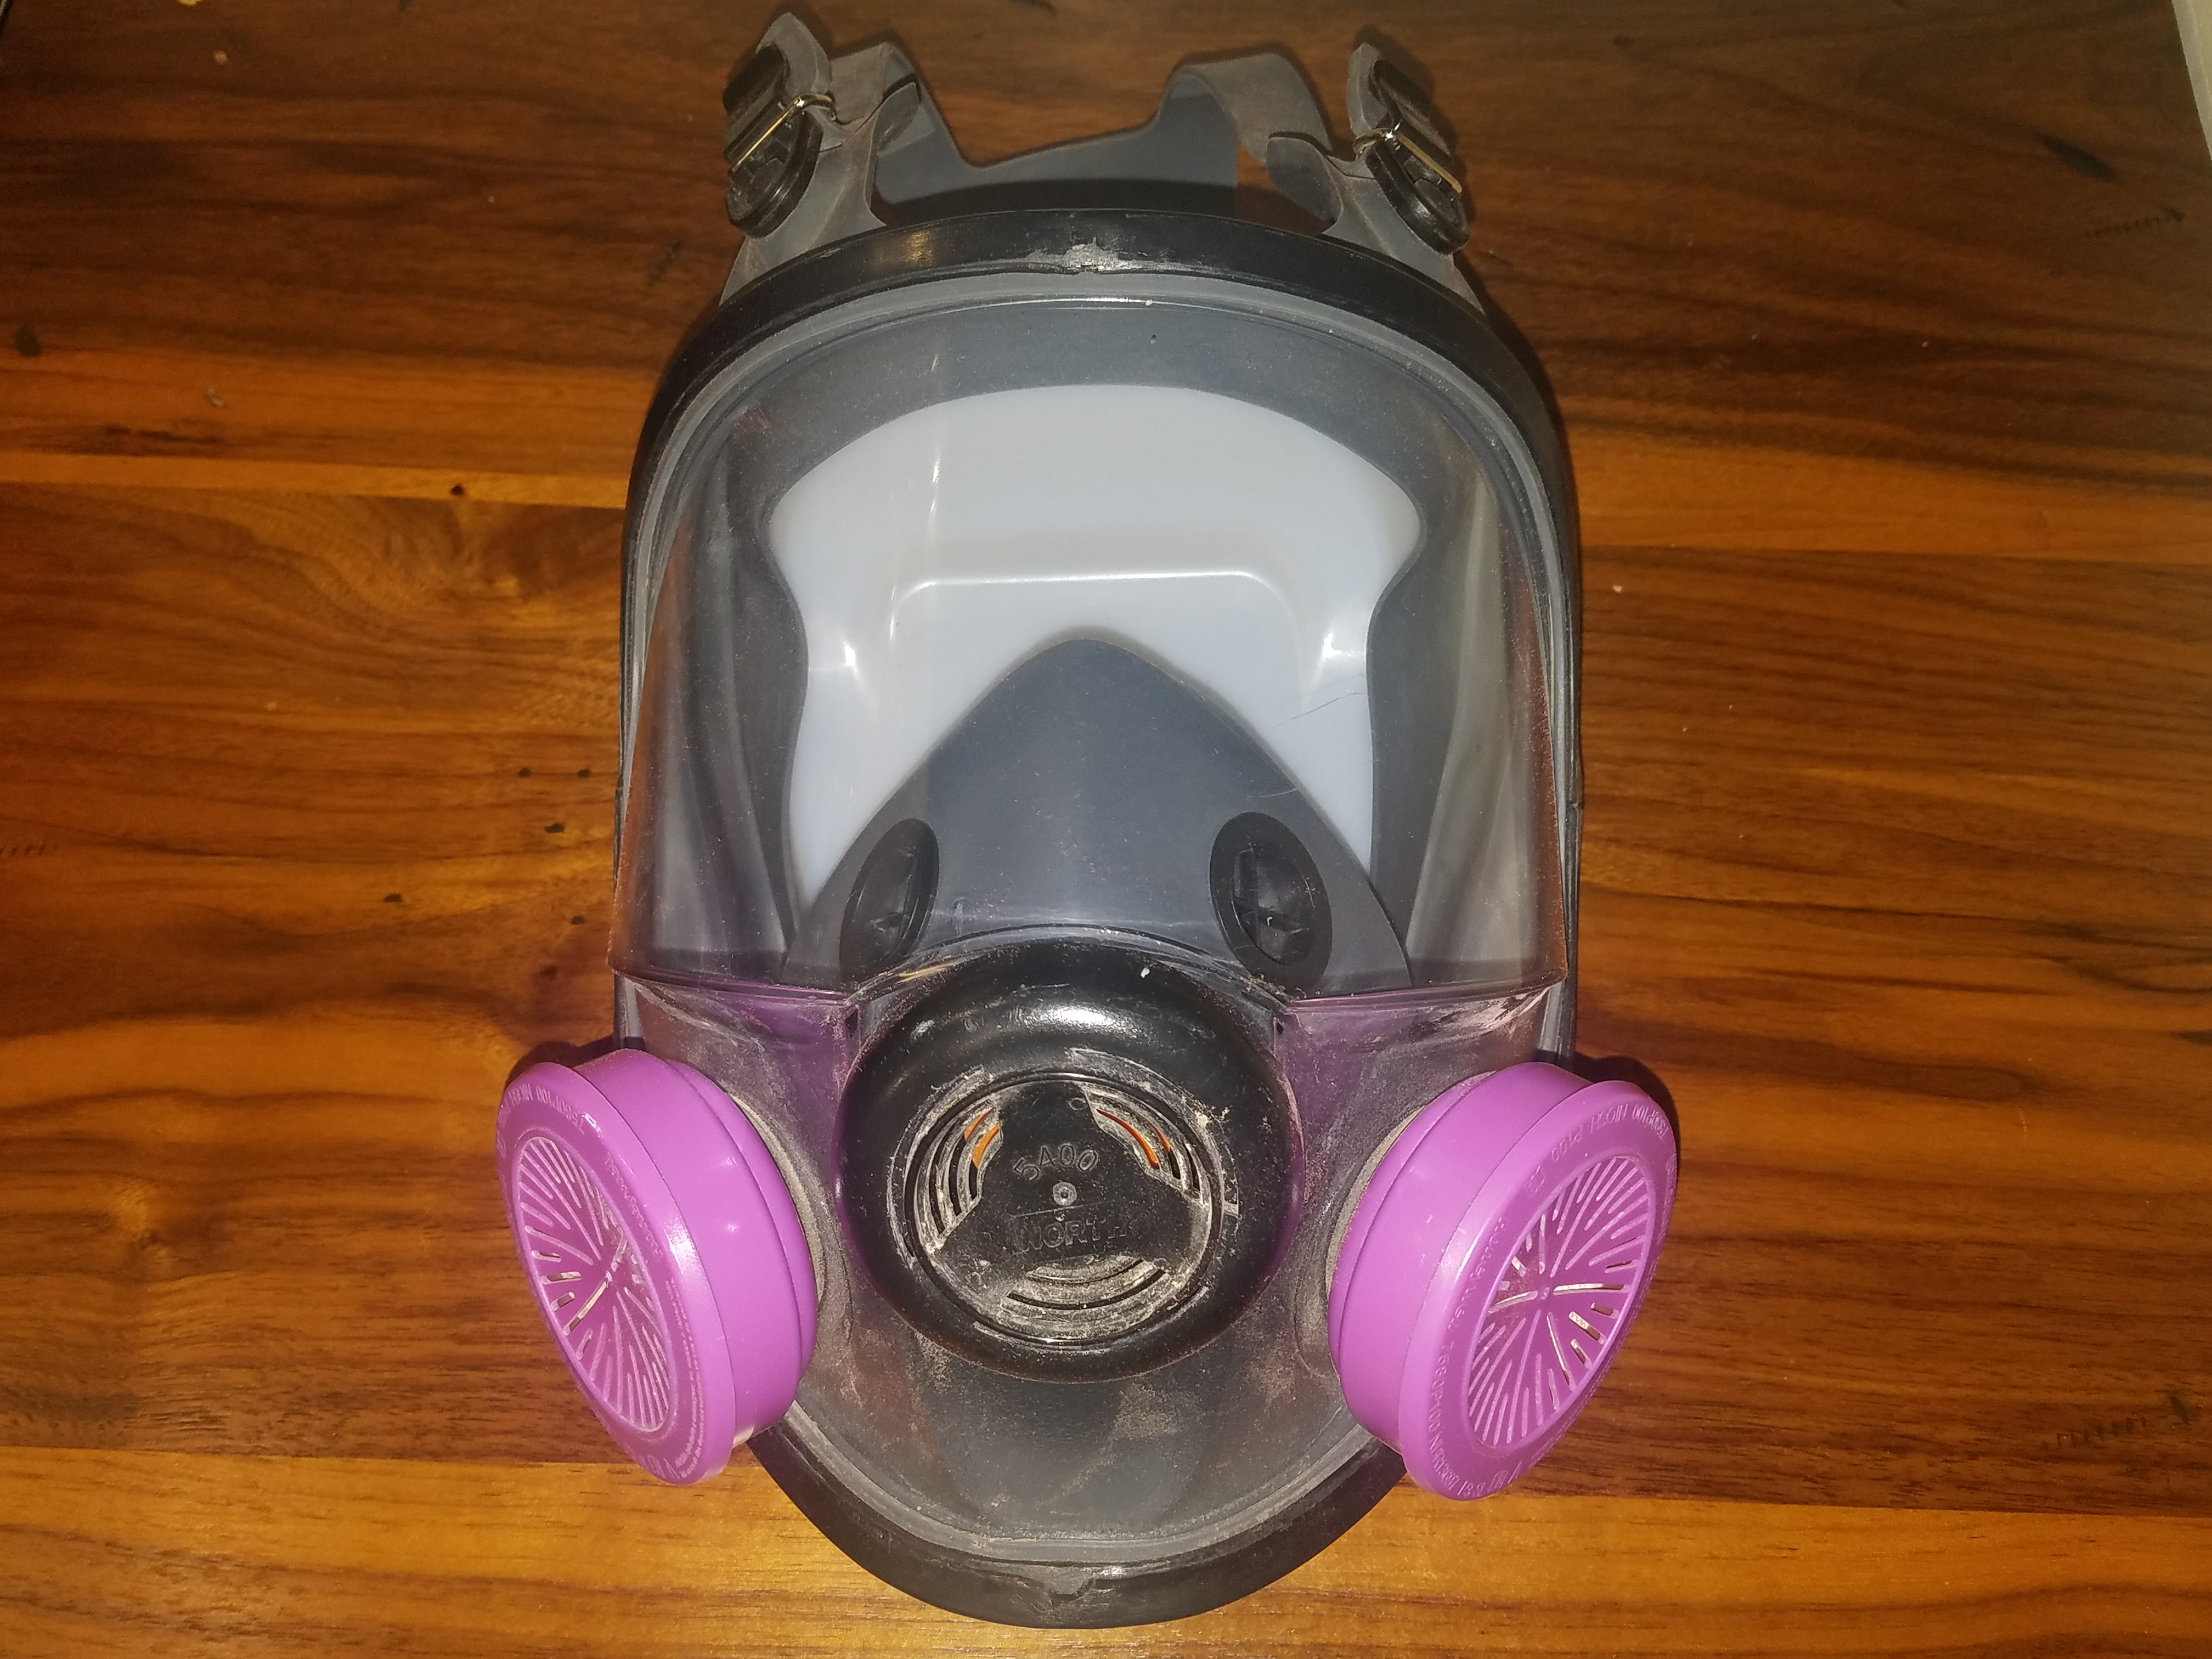 Cool Tools North Honeywell Full-faced Respirator